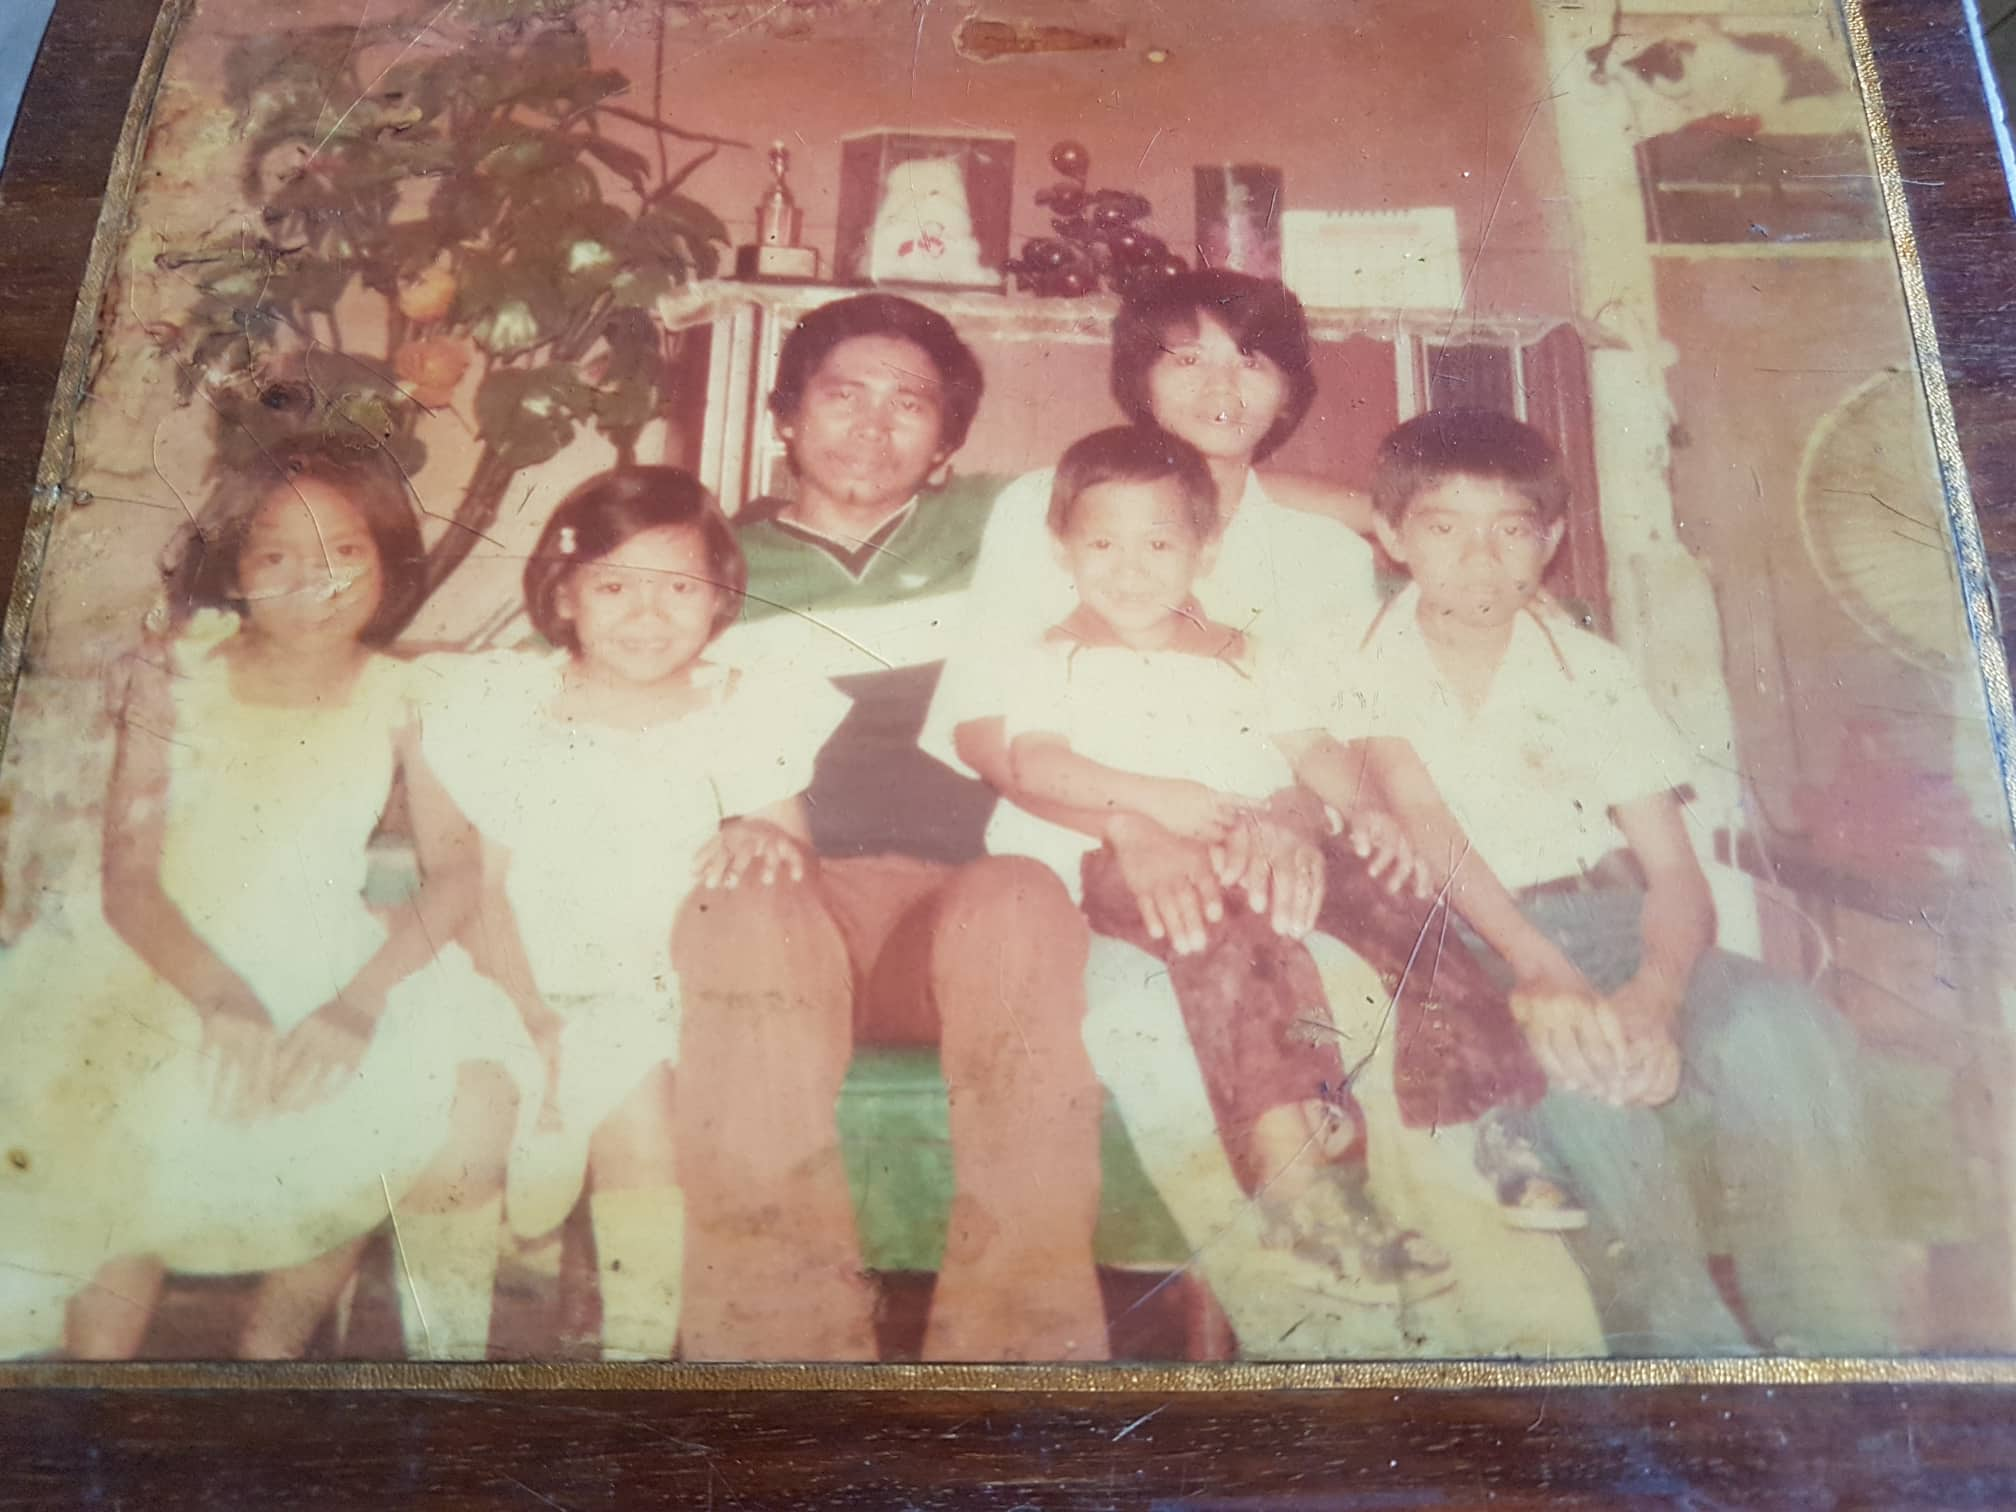 Tita and Emet with Young Children